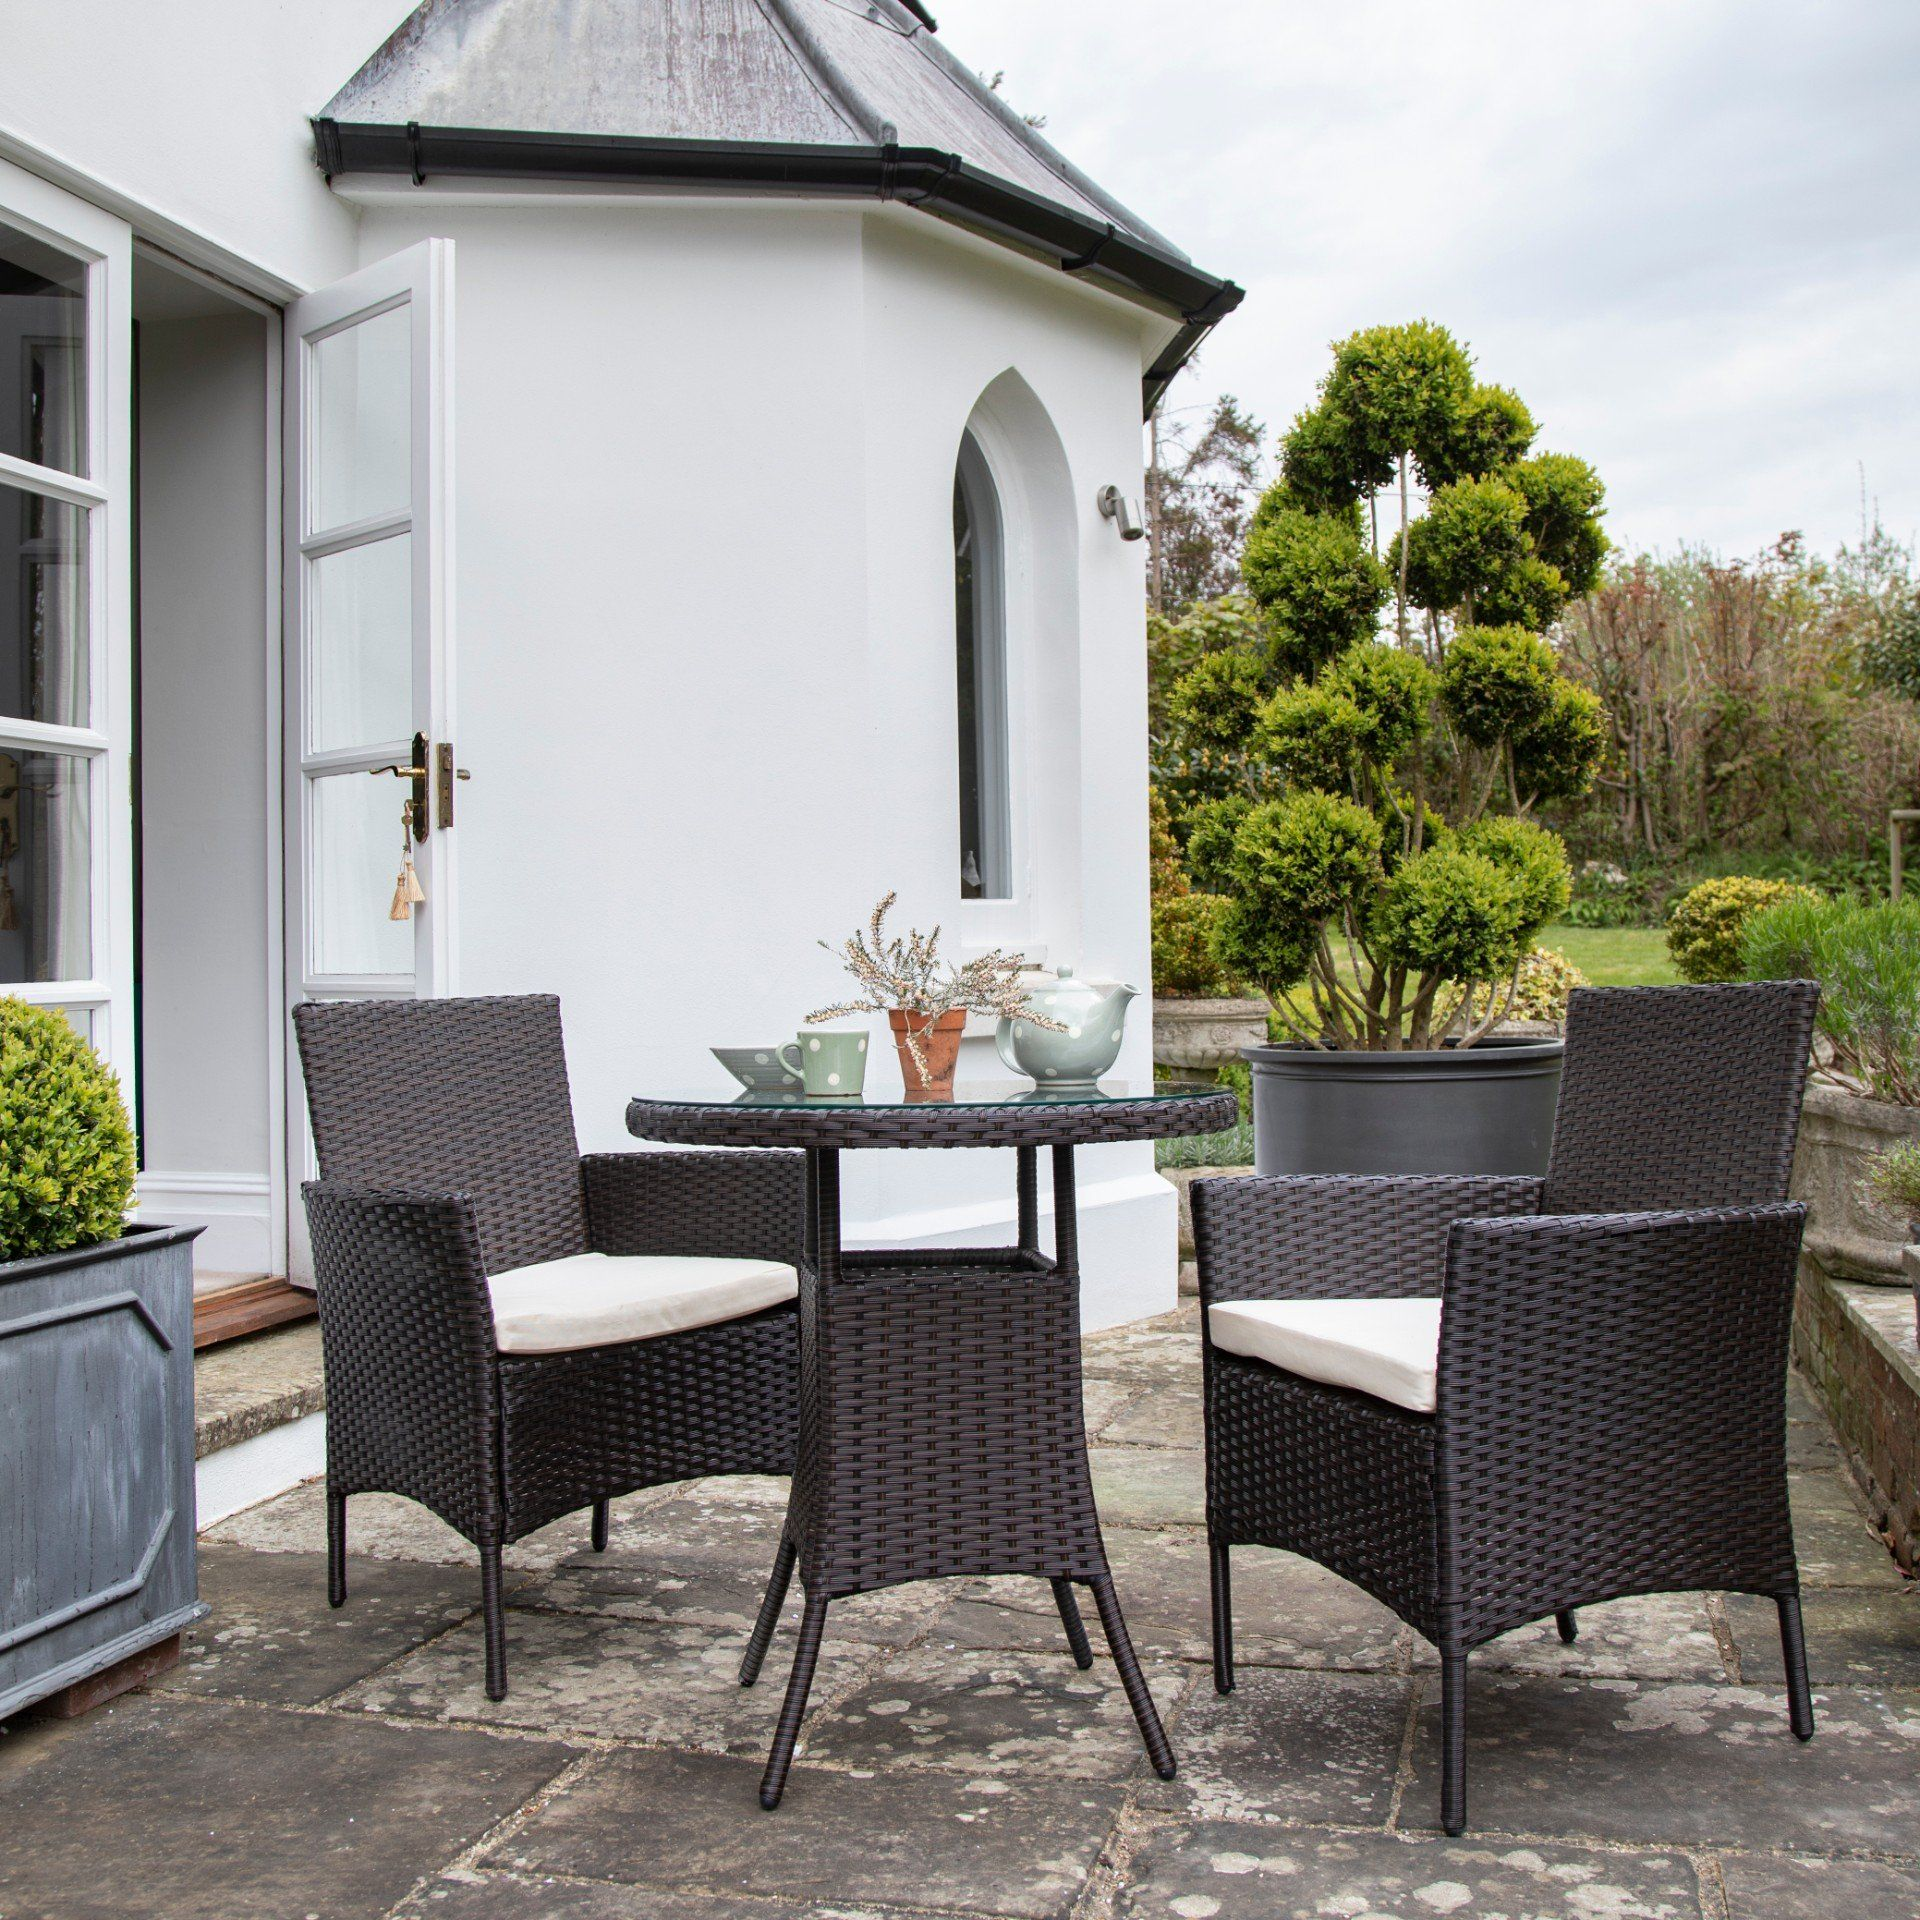 2 Seater Rattan Bistro Dining Set in Brown - Garden Furniture Outdoor Laura James